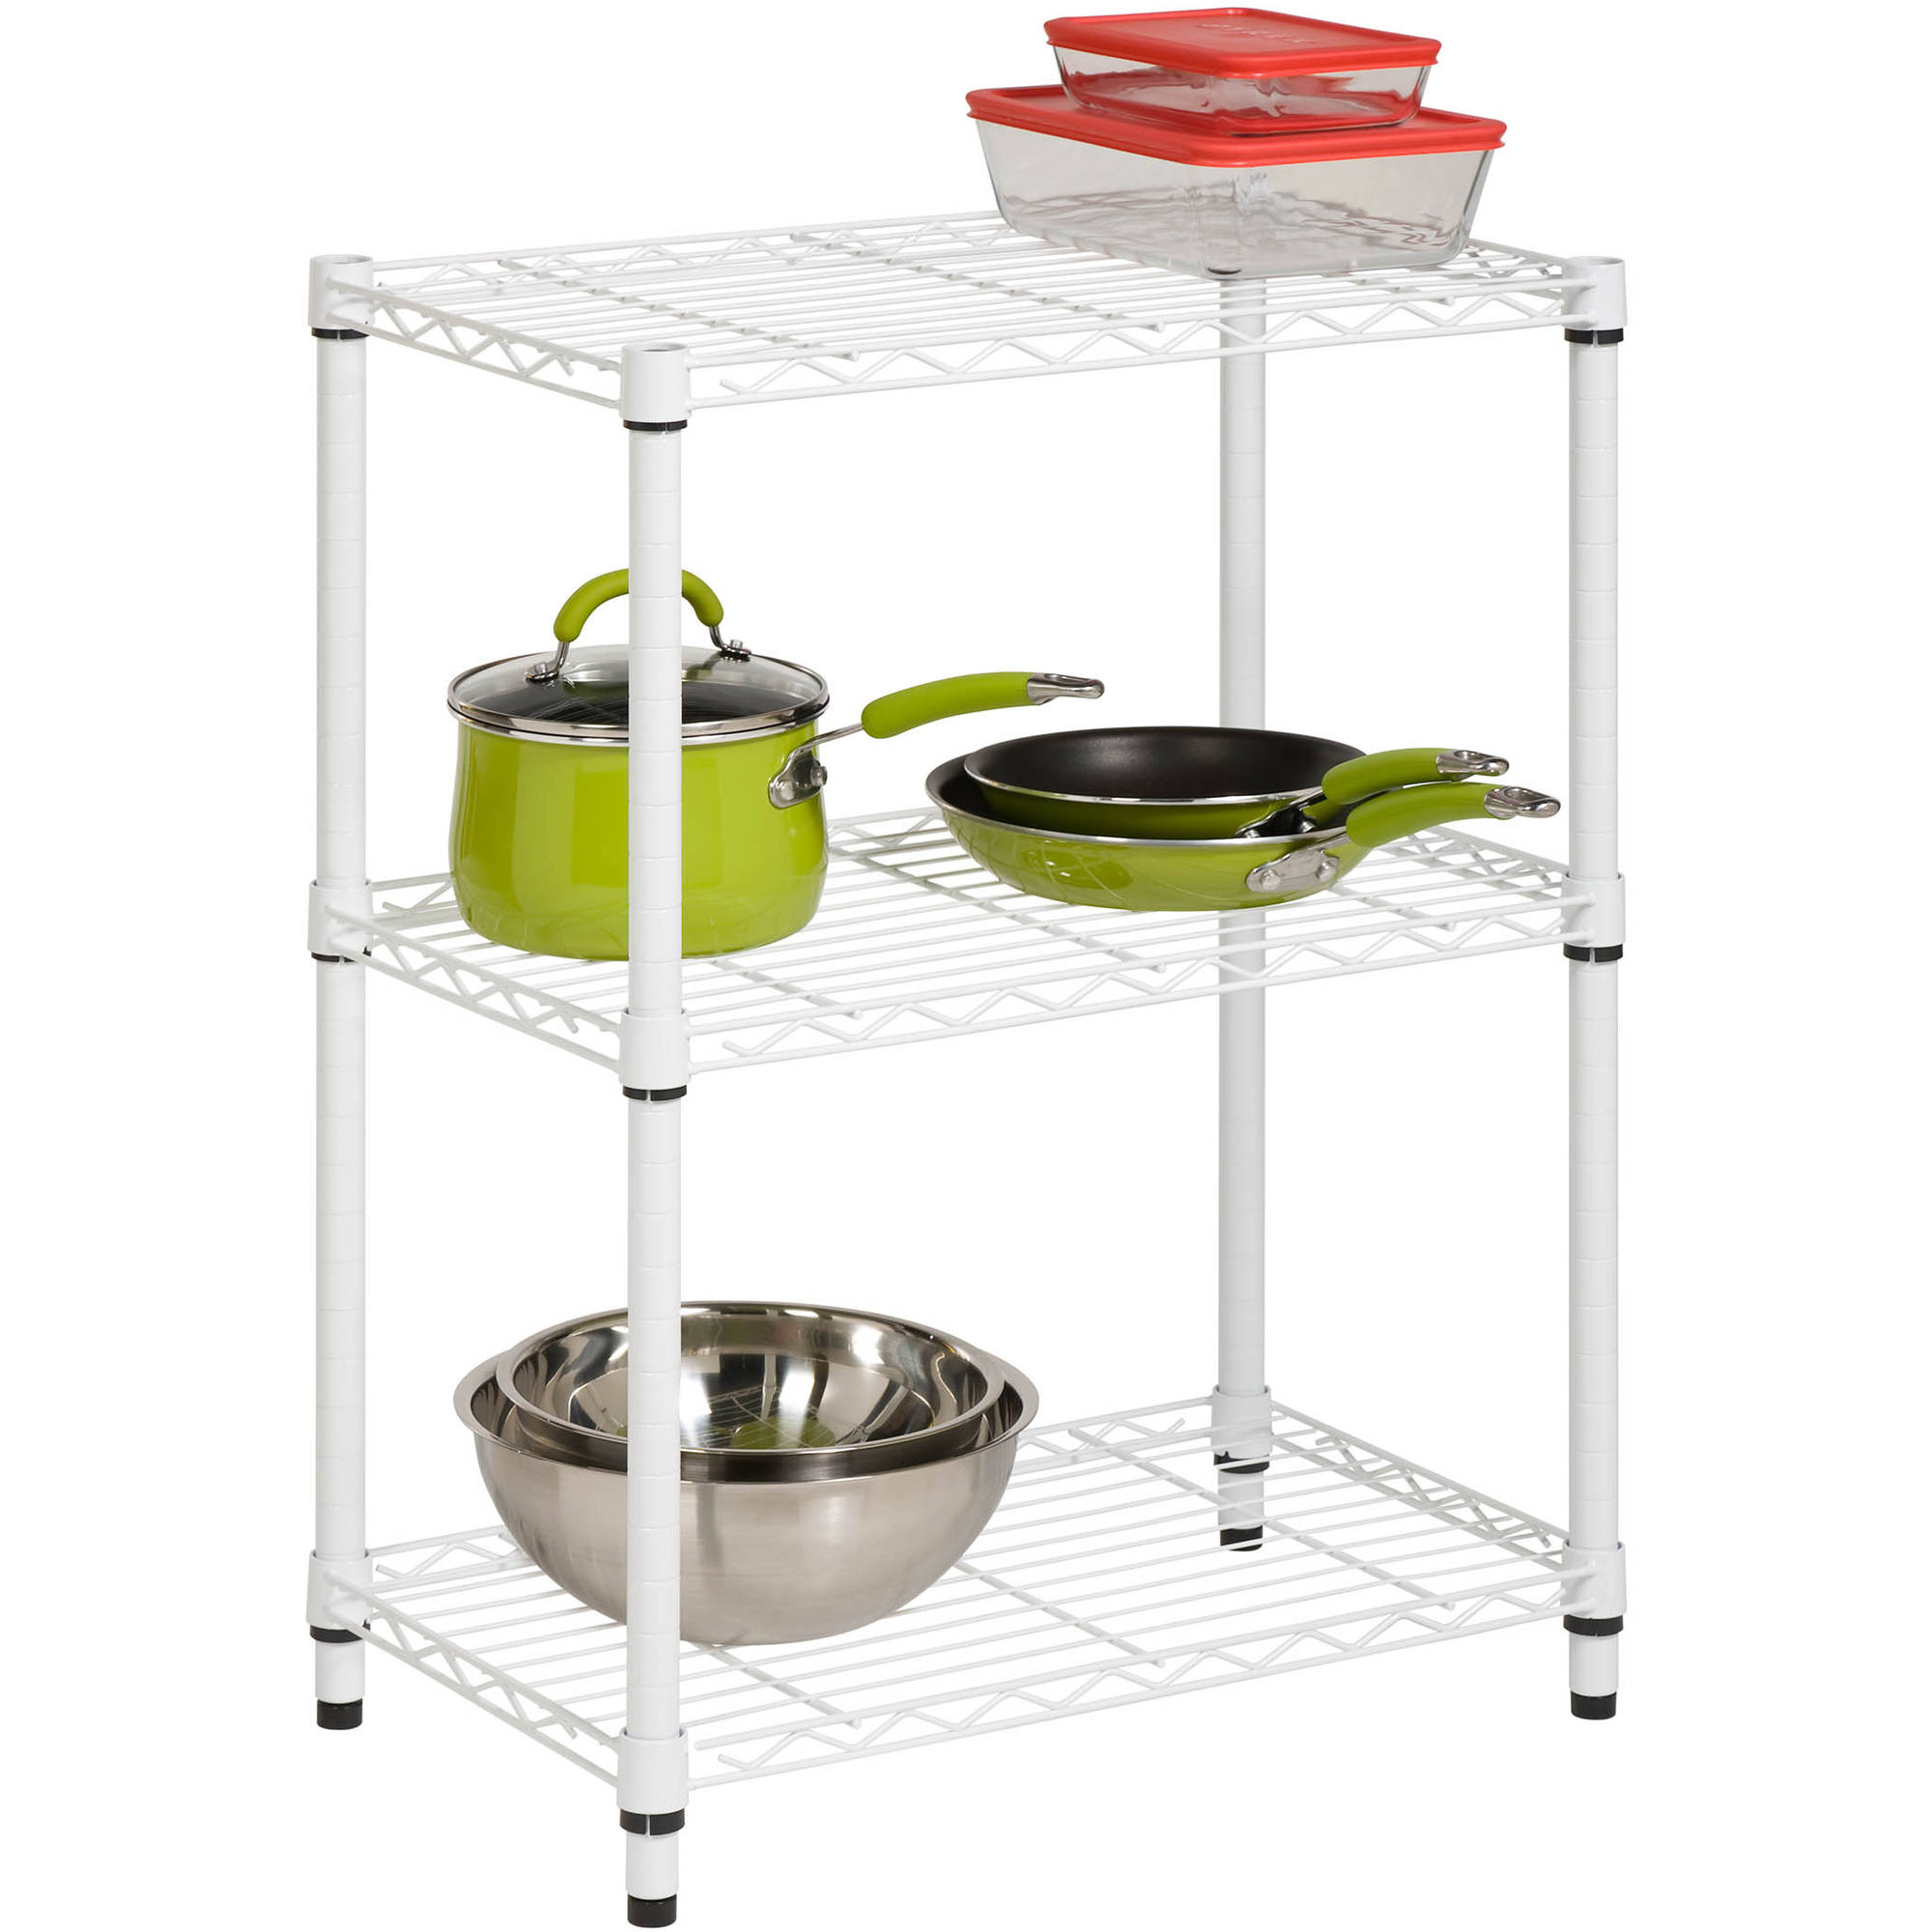 Wonderful Honey Can Do 4 Shelf Steel Storage Shelving Unit, White   Walmart.com